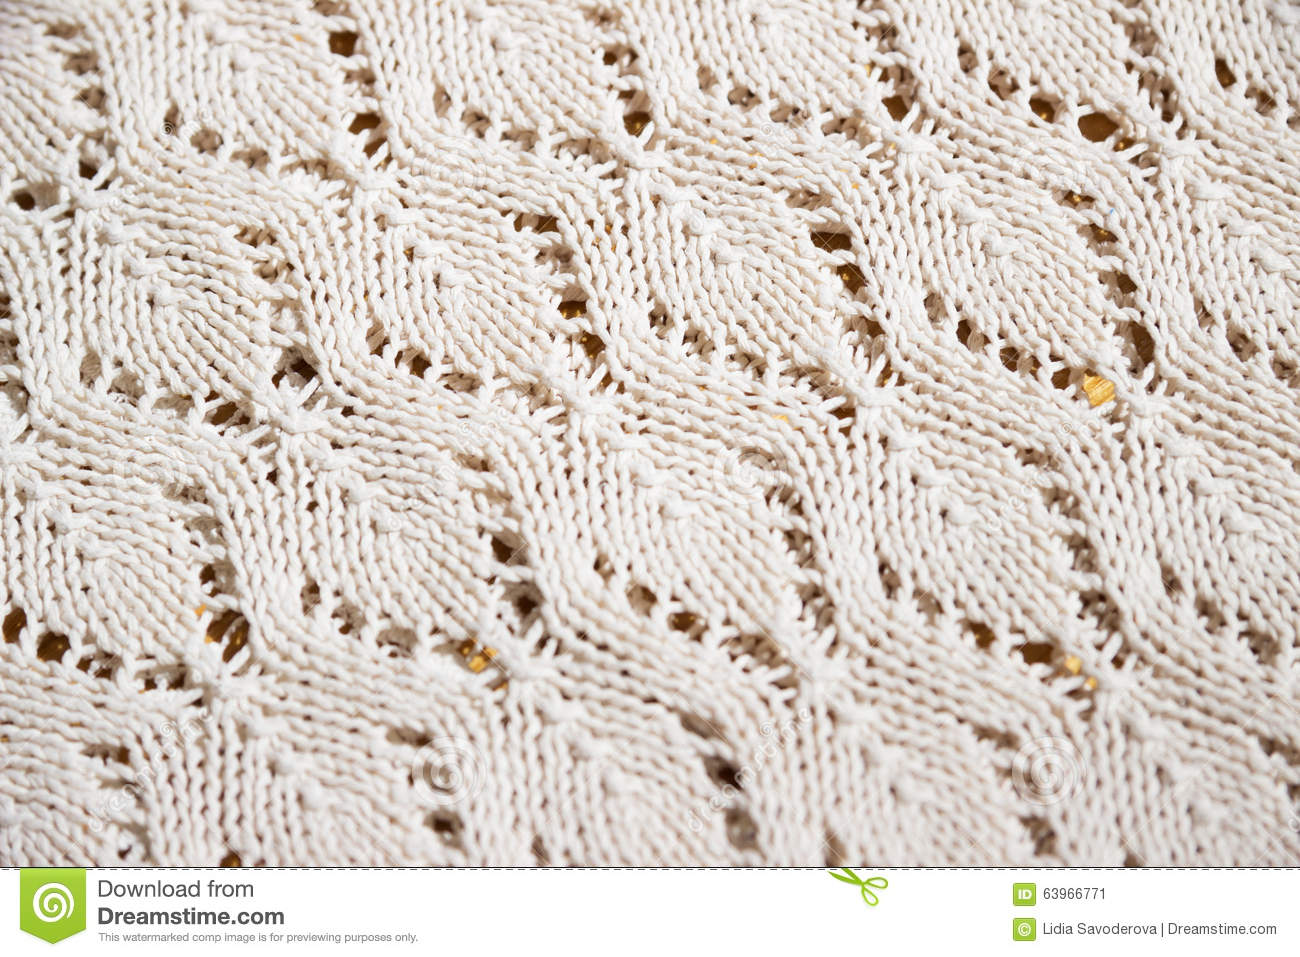 Texture of a piece of knit fabric